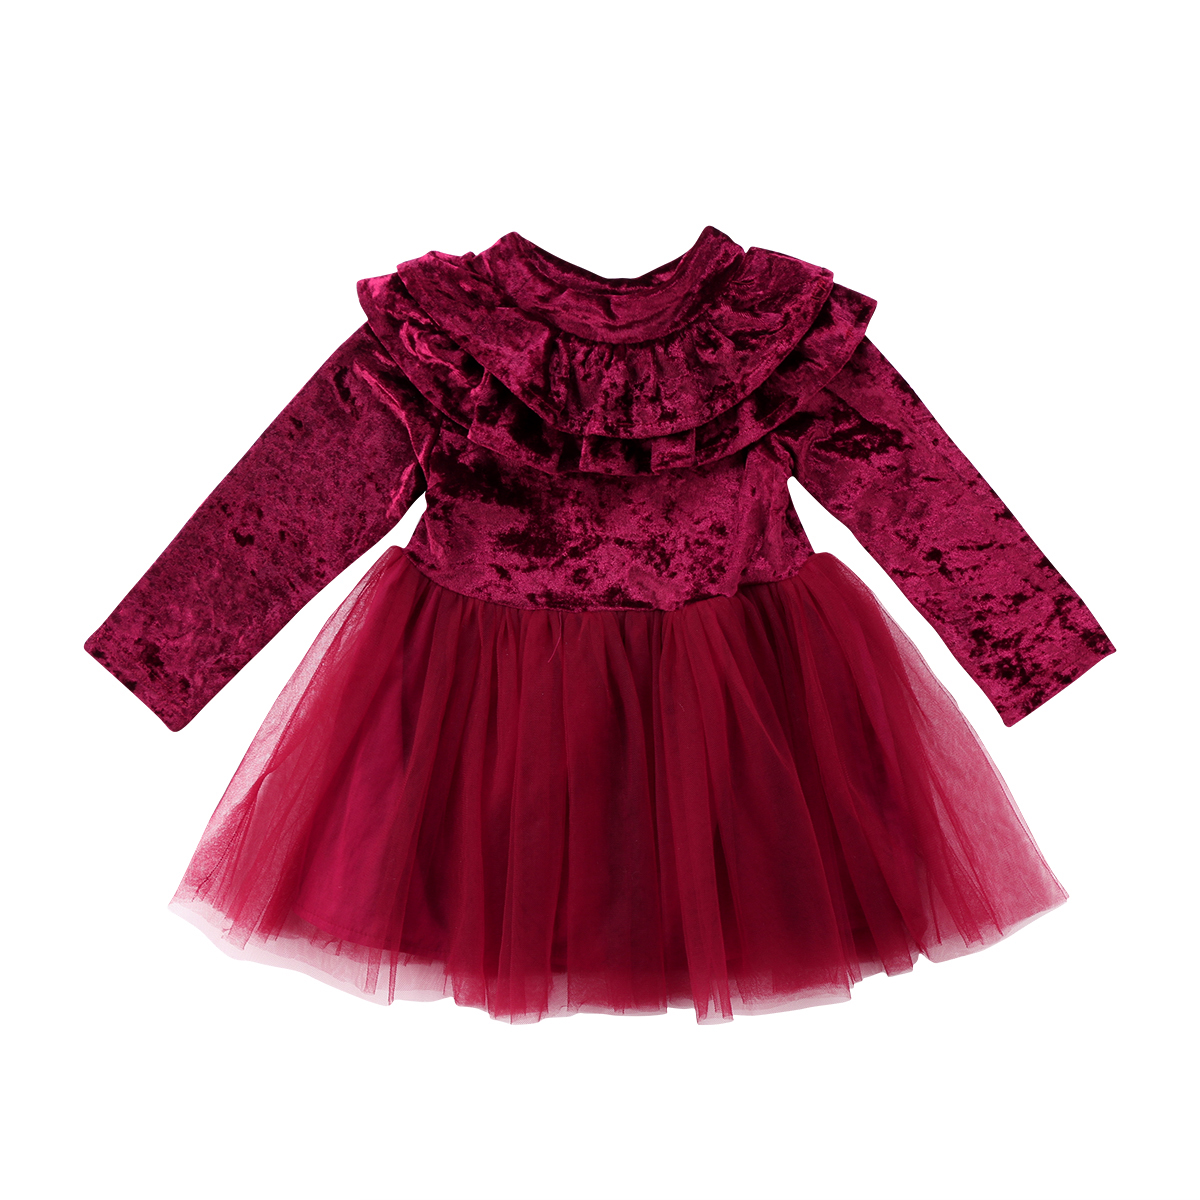 Princess Kids Baby Girls Dress Velvet Fleece Long Sleeve Midi Cute Tiered Tutu Party Ruffle Tulle Tutu Dresses Girl 1-6T ruffle trim tiered cami blouse